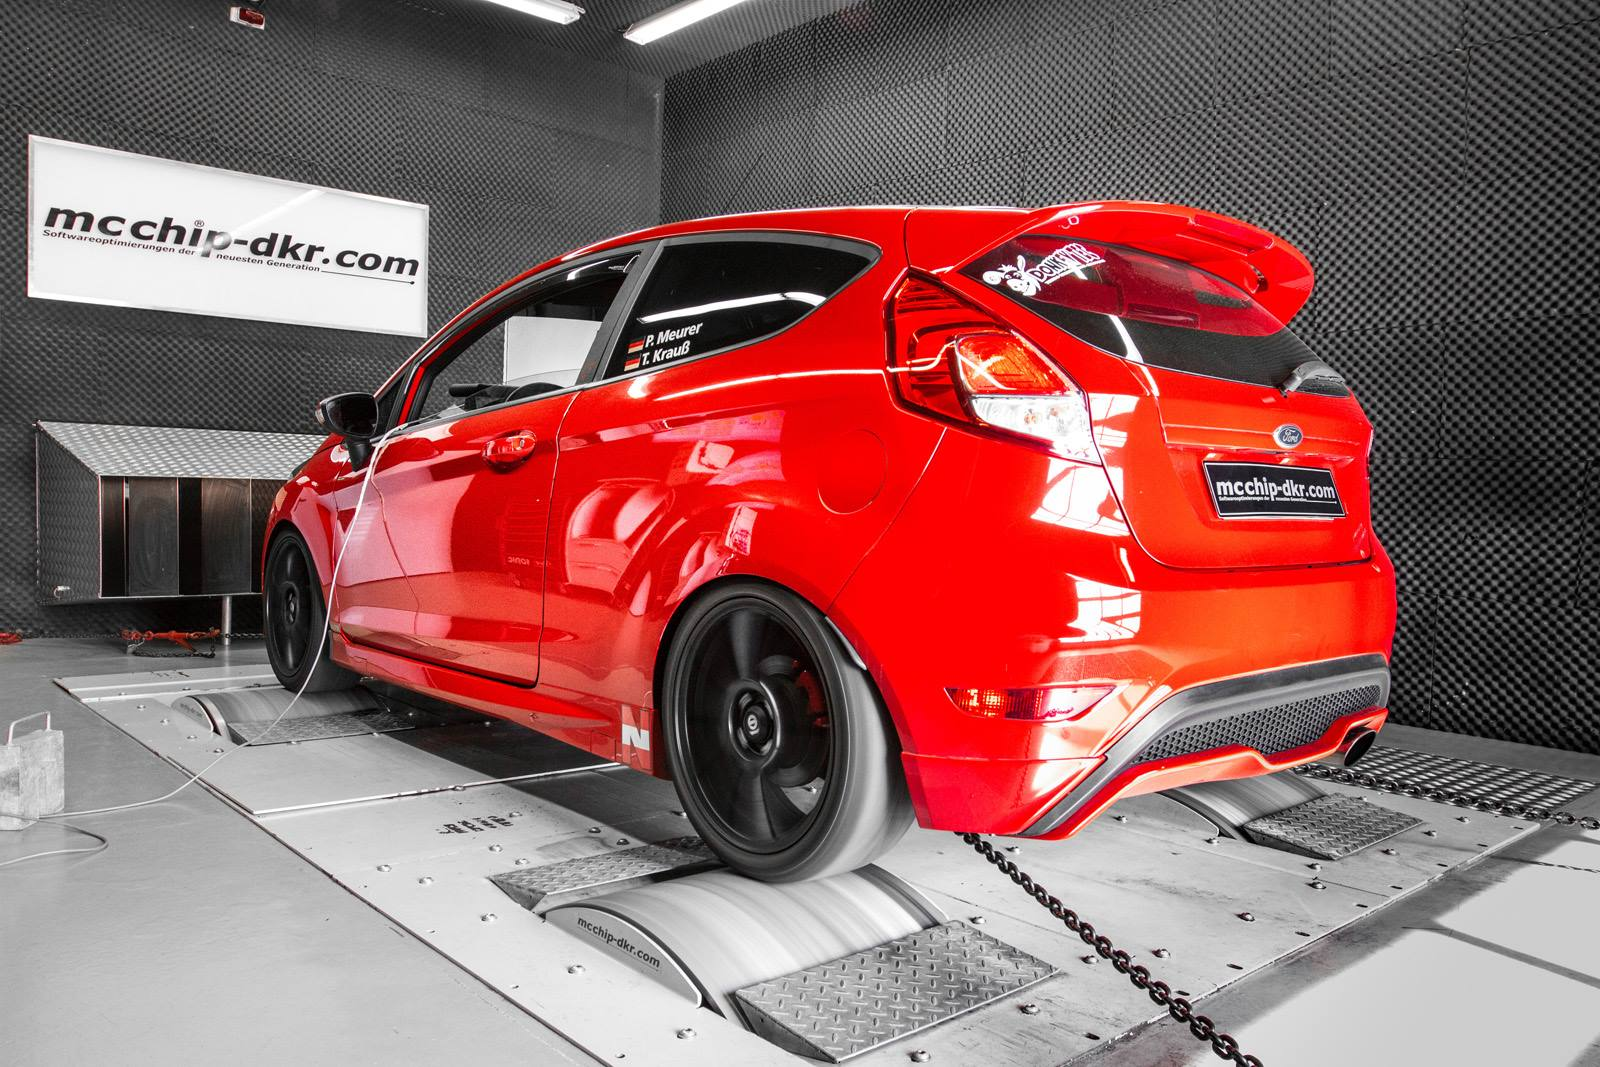 Ford Fiesta ST 1.6-Liter Turbo Tuned to 266 HP and 387 Nm of Torque ...